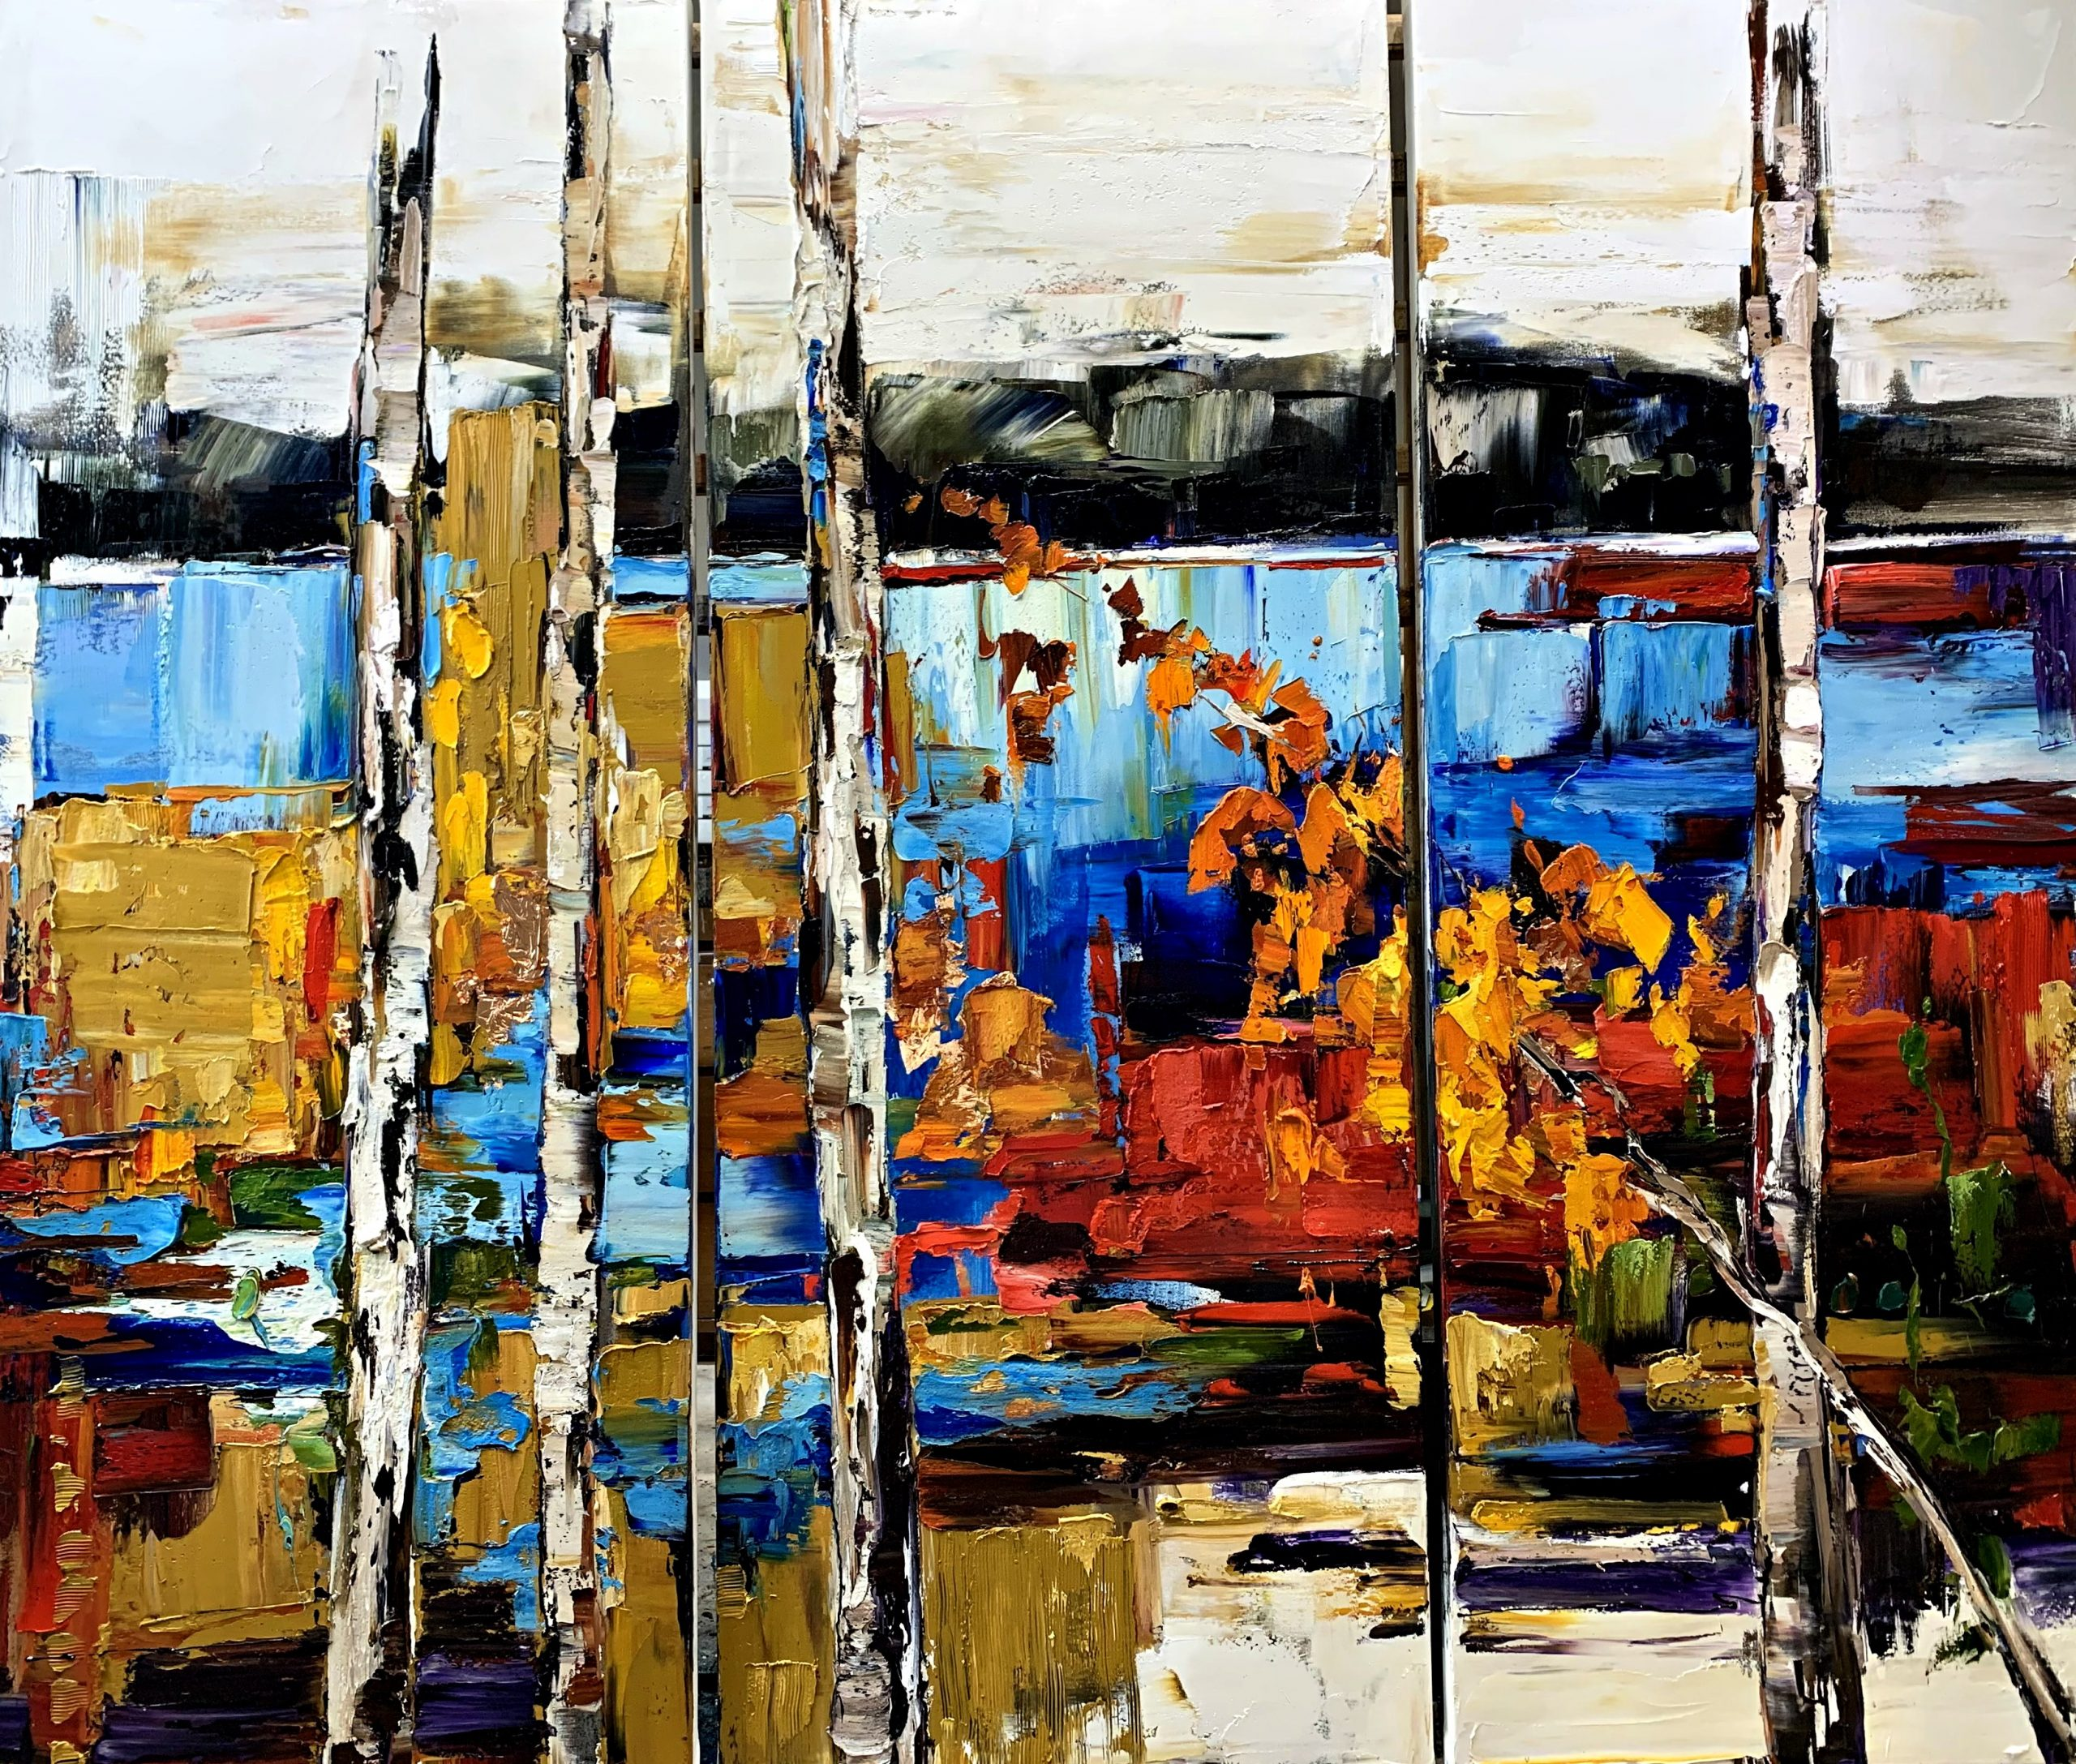 That Could Change Too, mixed media landscape painting by Kimberly Kiel | Effusion Art Gallery +  Cast Glass Studio, Invermere BC